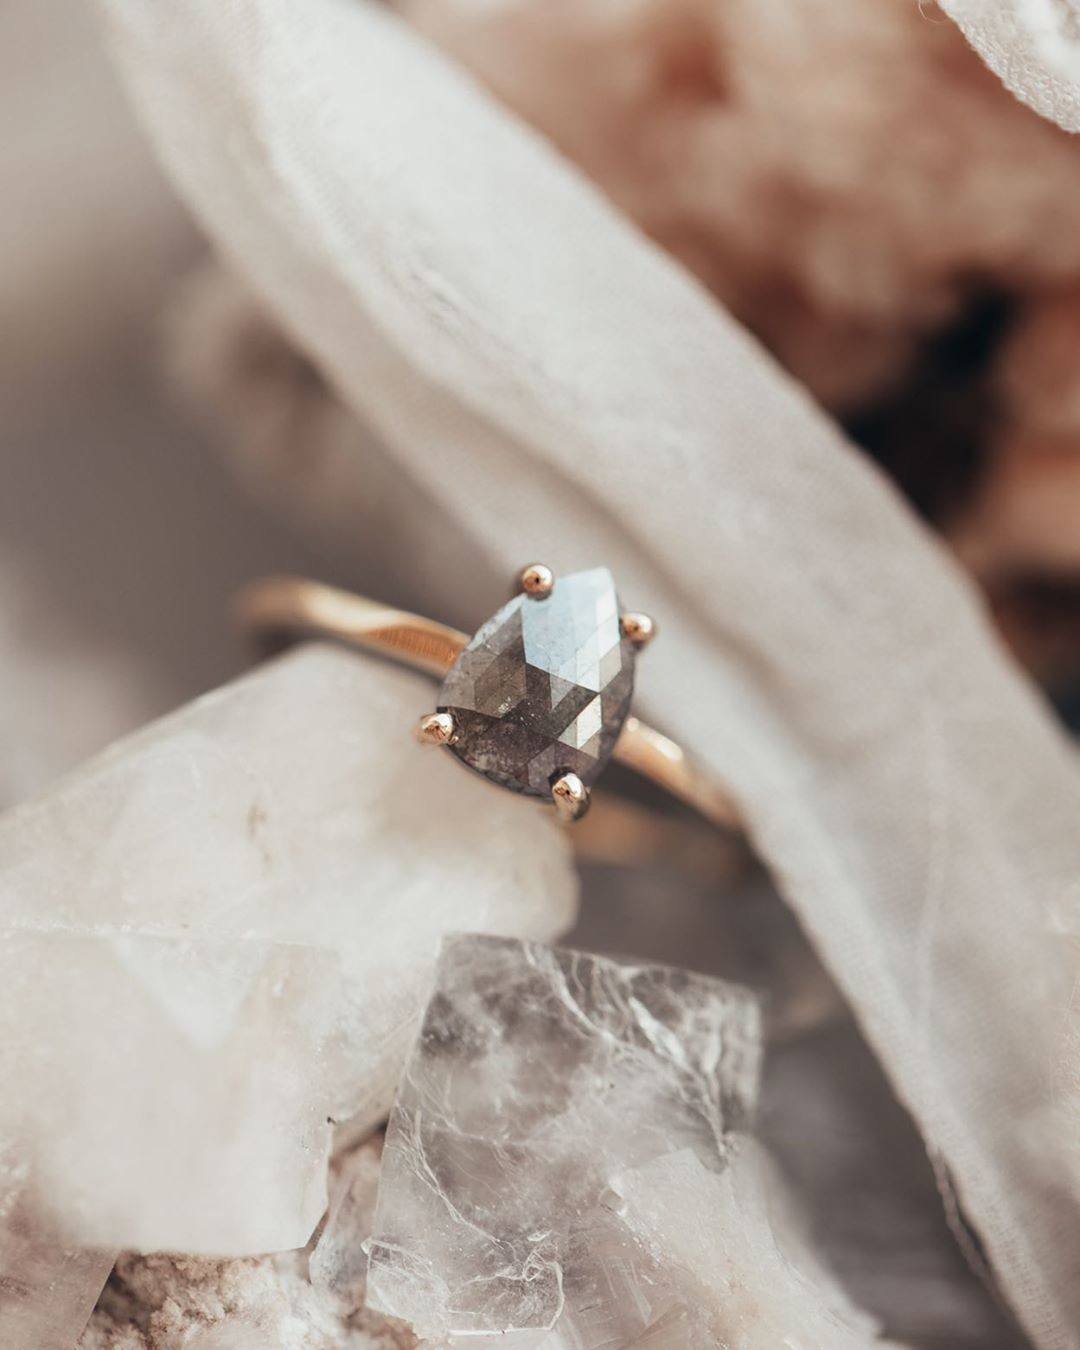 One of our current shop favorites, this prong set smokey rough diamond has stolen our hearts. Double tap if you love this ring as much